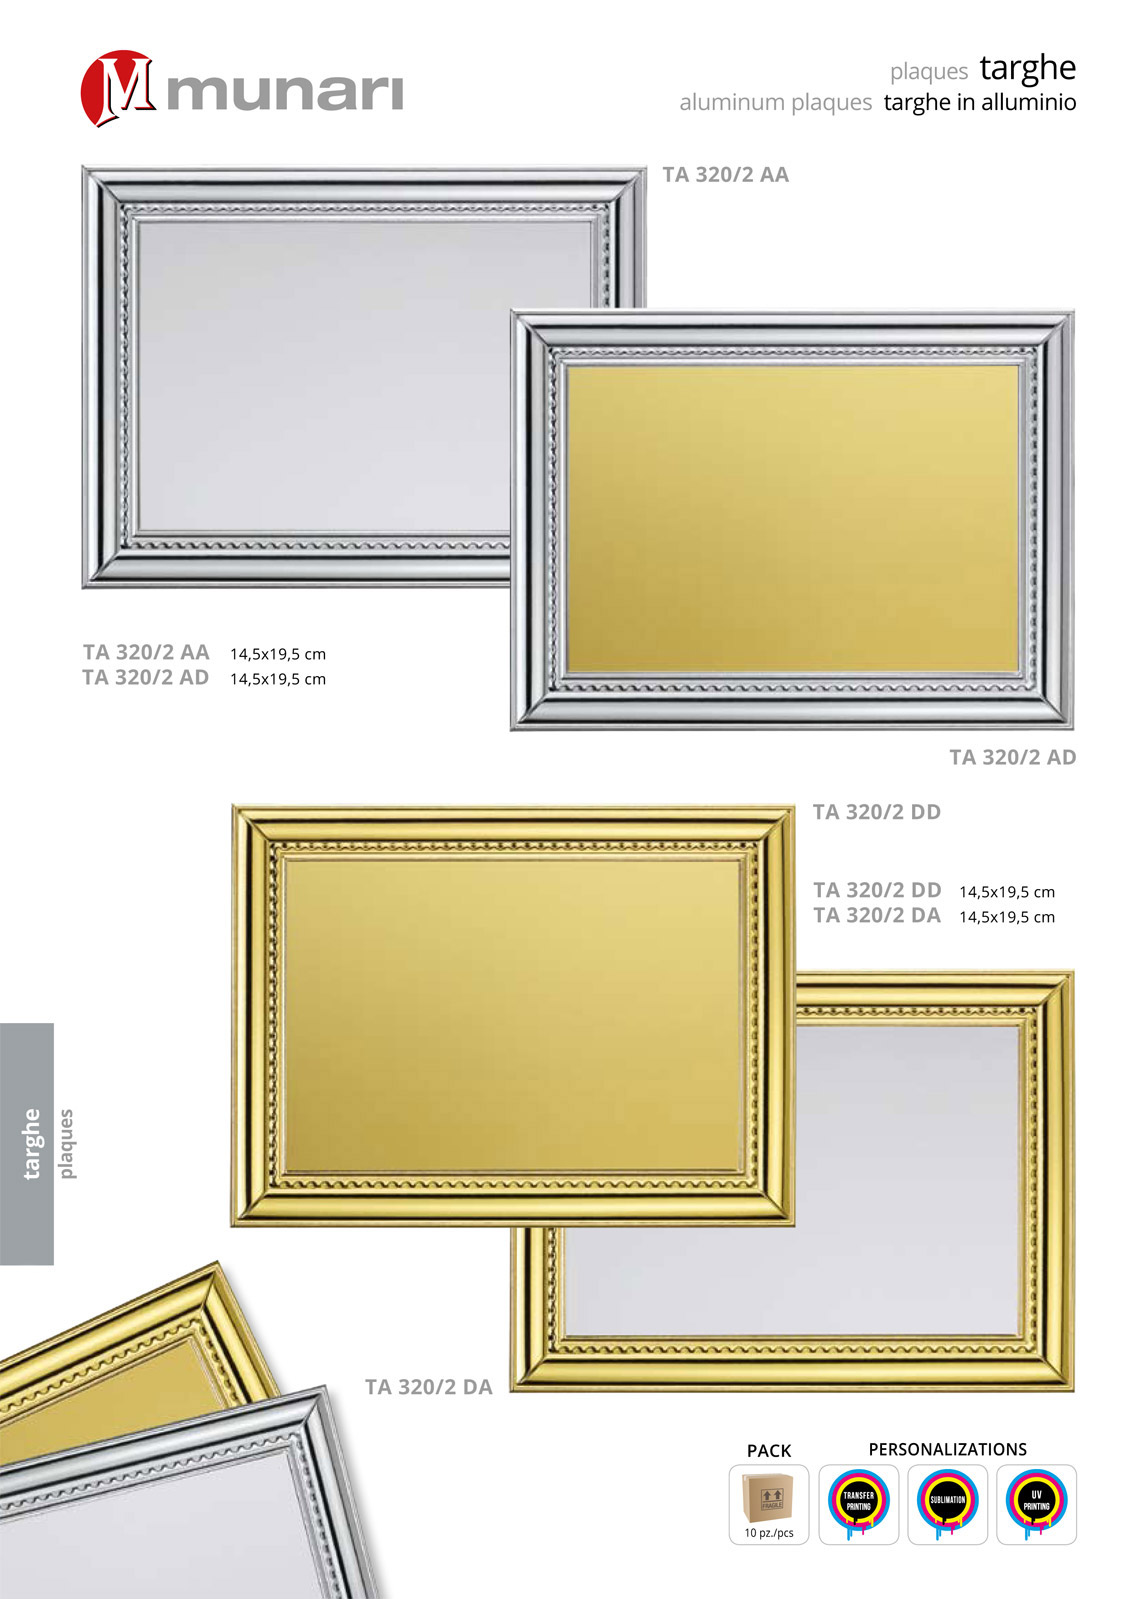 Aluminum plaques for sublimation or transfer printing series TA 320A